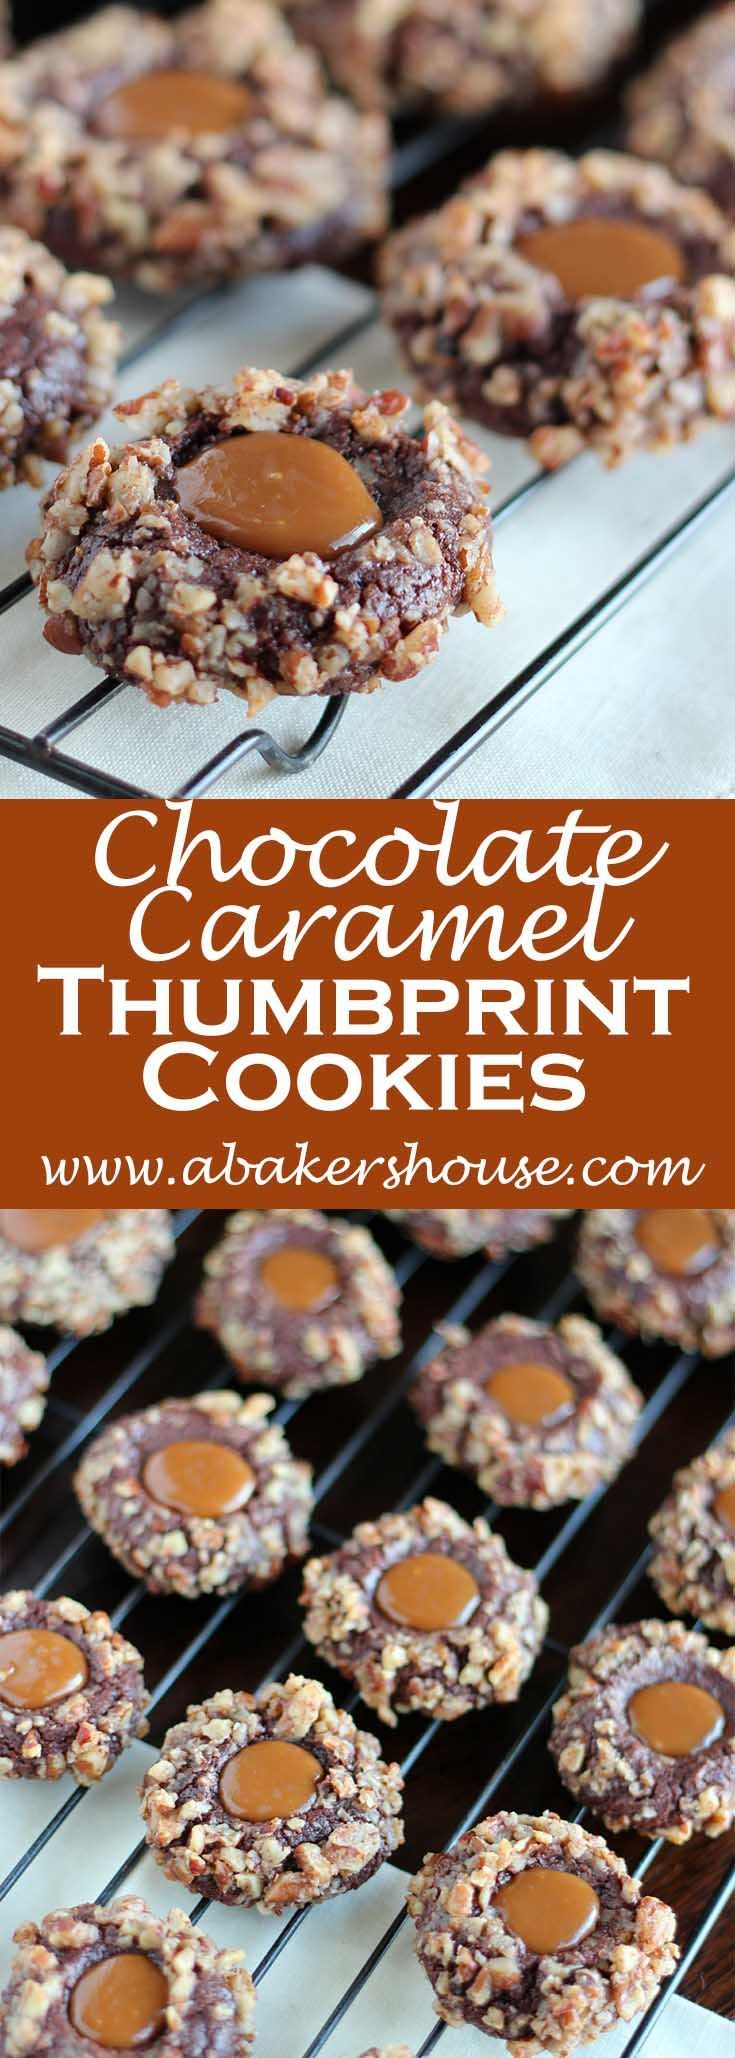 Chocolate Caramel Thumbprint Cookies: The dough is made and refrigerated, then balls of dough are dipped in egg whites and coated with pecans. The caramel is the treat added after baking. Perfect for Holiday cookie exchanges!